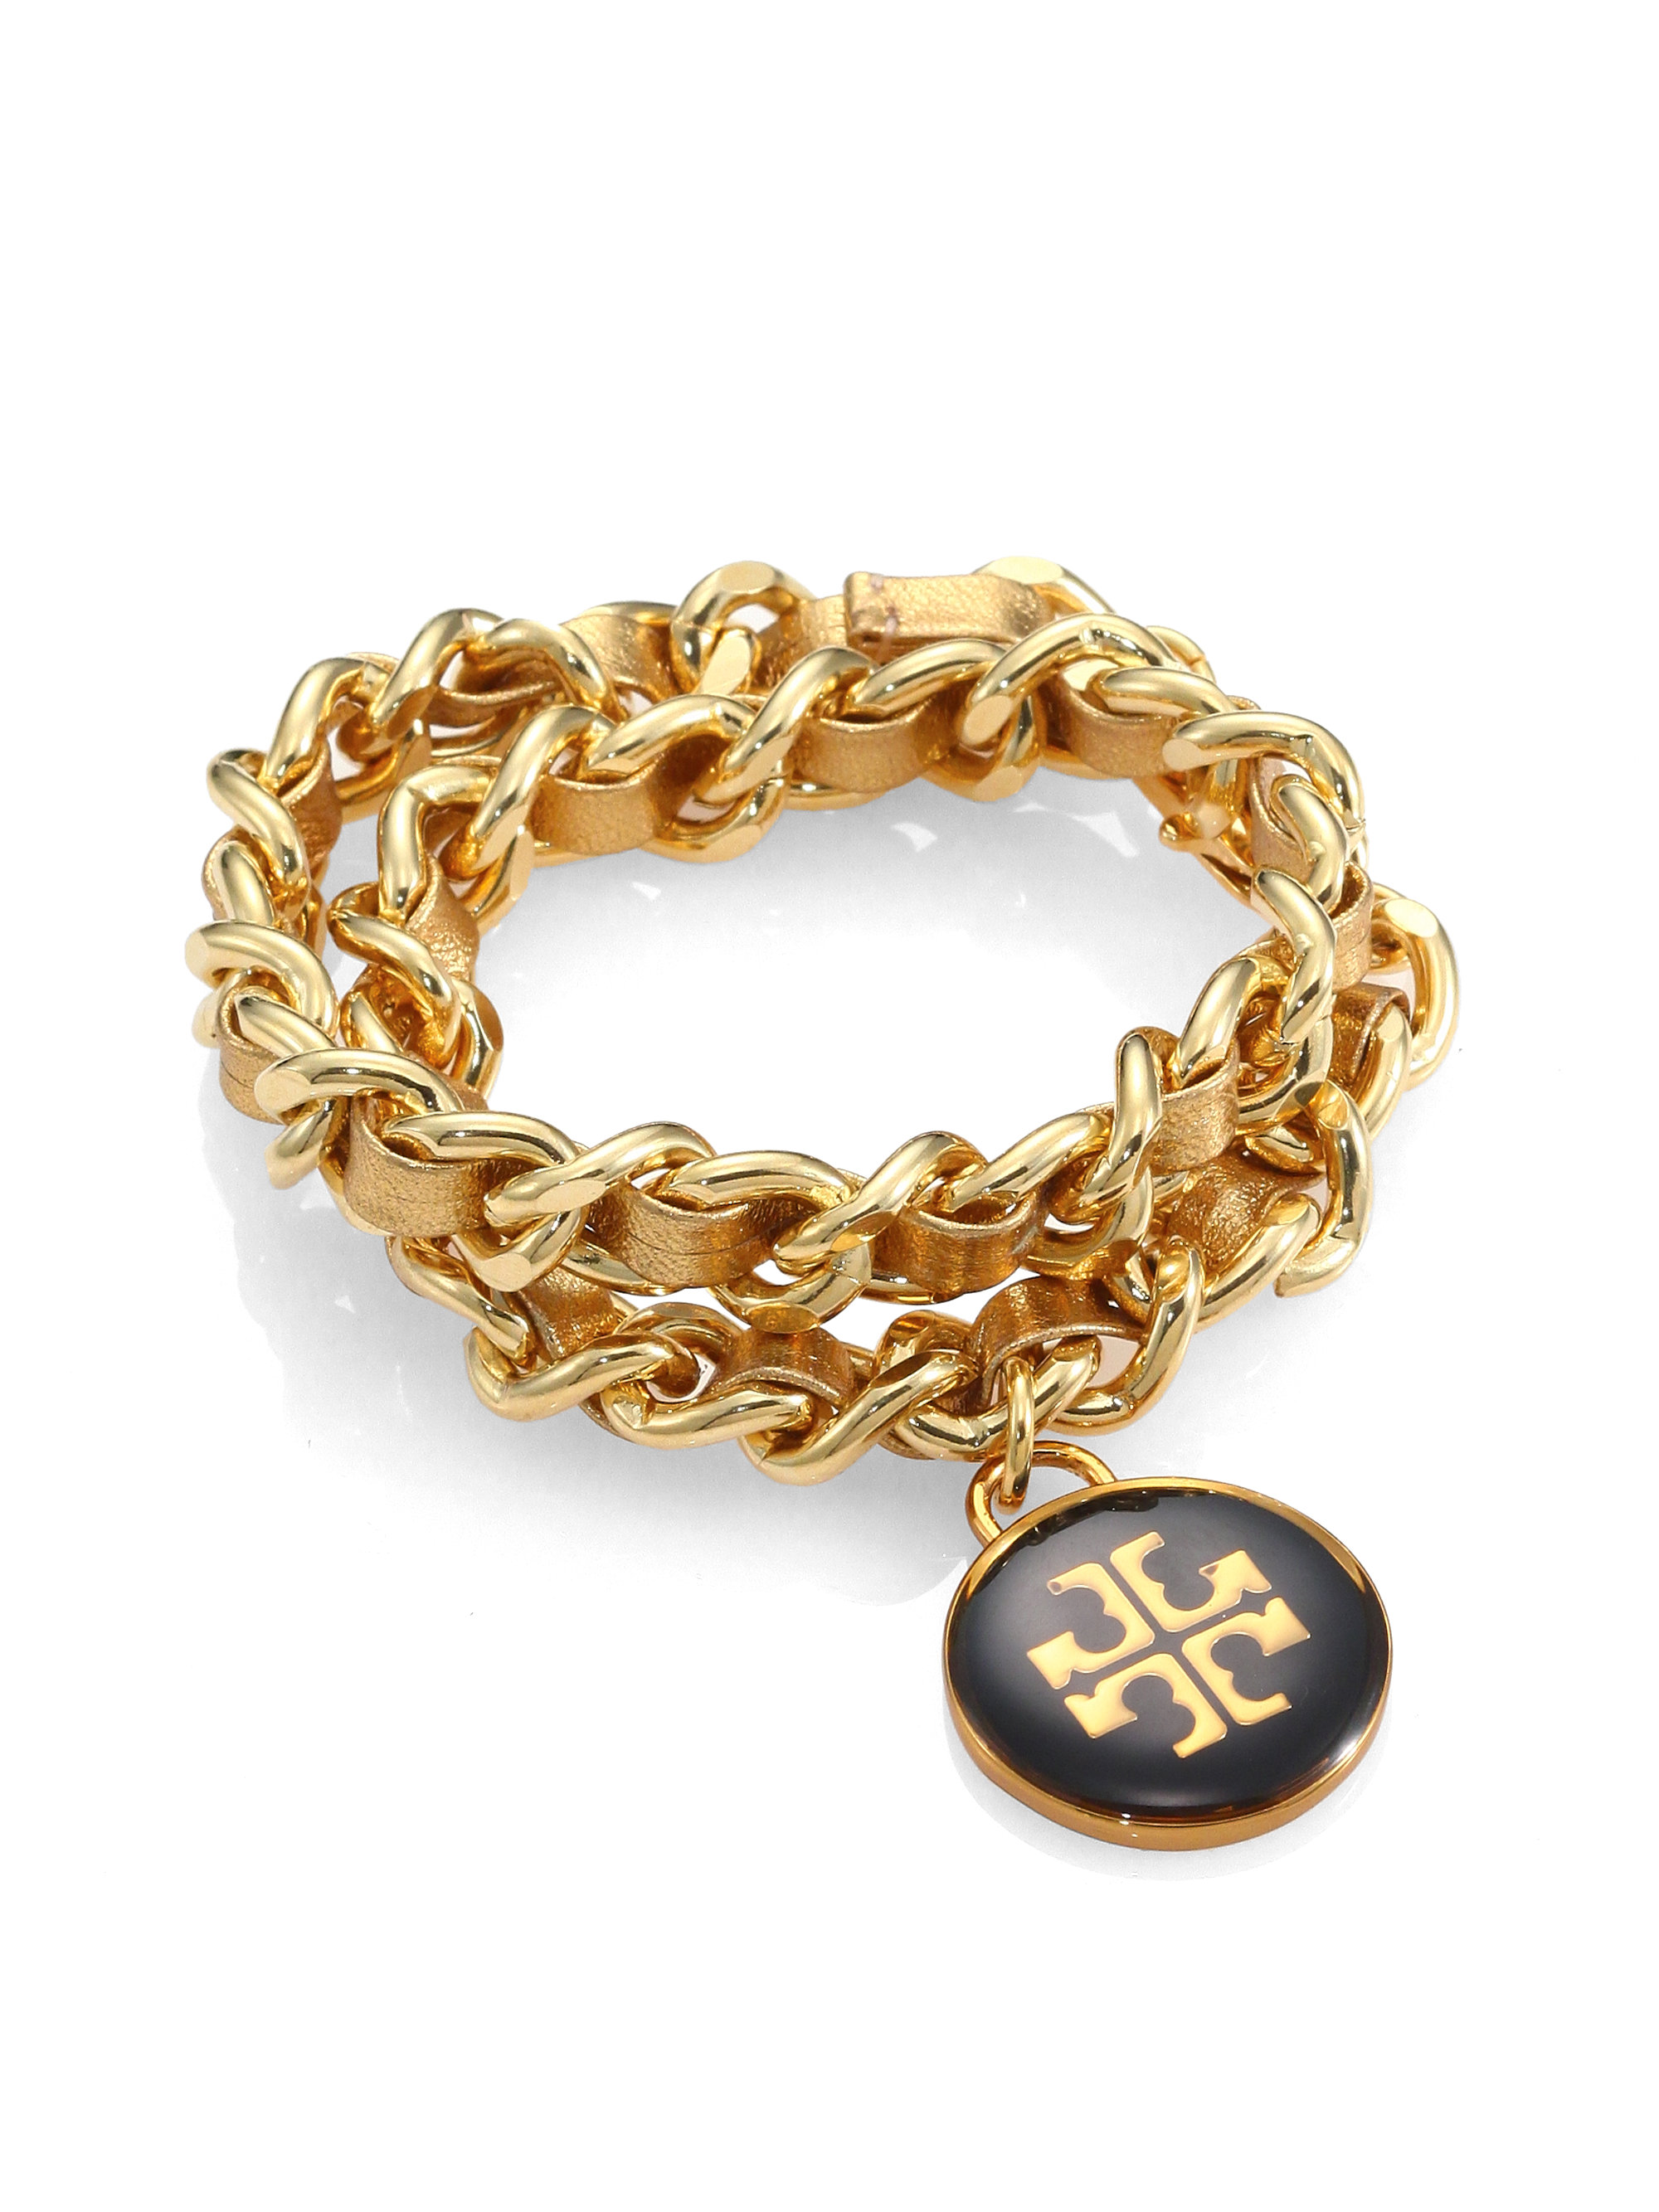 burch woven metallic leather chain logo bracelet in